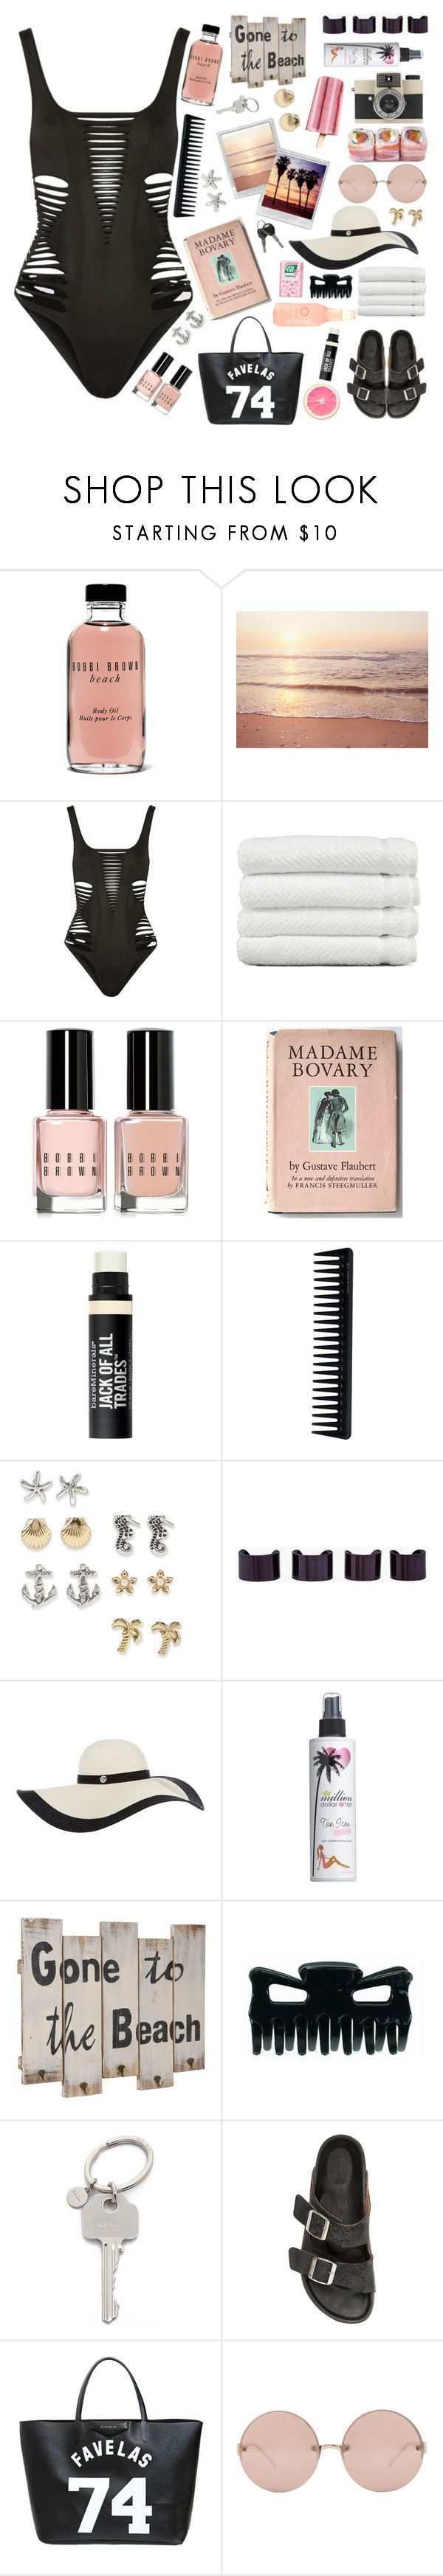 """""""Fashion is my beach!!!!"""" by karineminzonwilson ❤ liked on Polyvore featuring Bobbi Brown Cosmetics, WALL, Agent Provocateur, Linum Home Textiles, Bare Escentuals, GHD, Aéropostale, Maison Margiela, Million Dollar Tan and Paul Smith"""